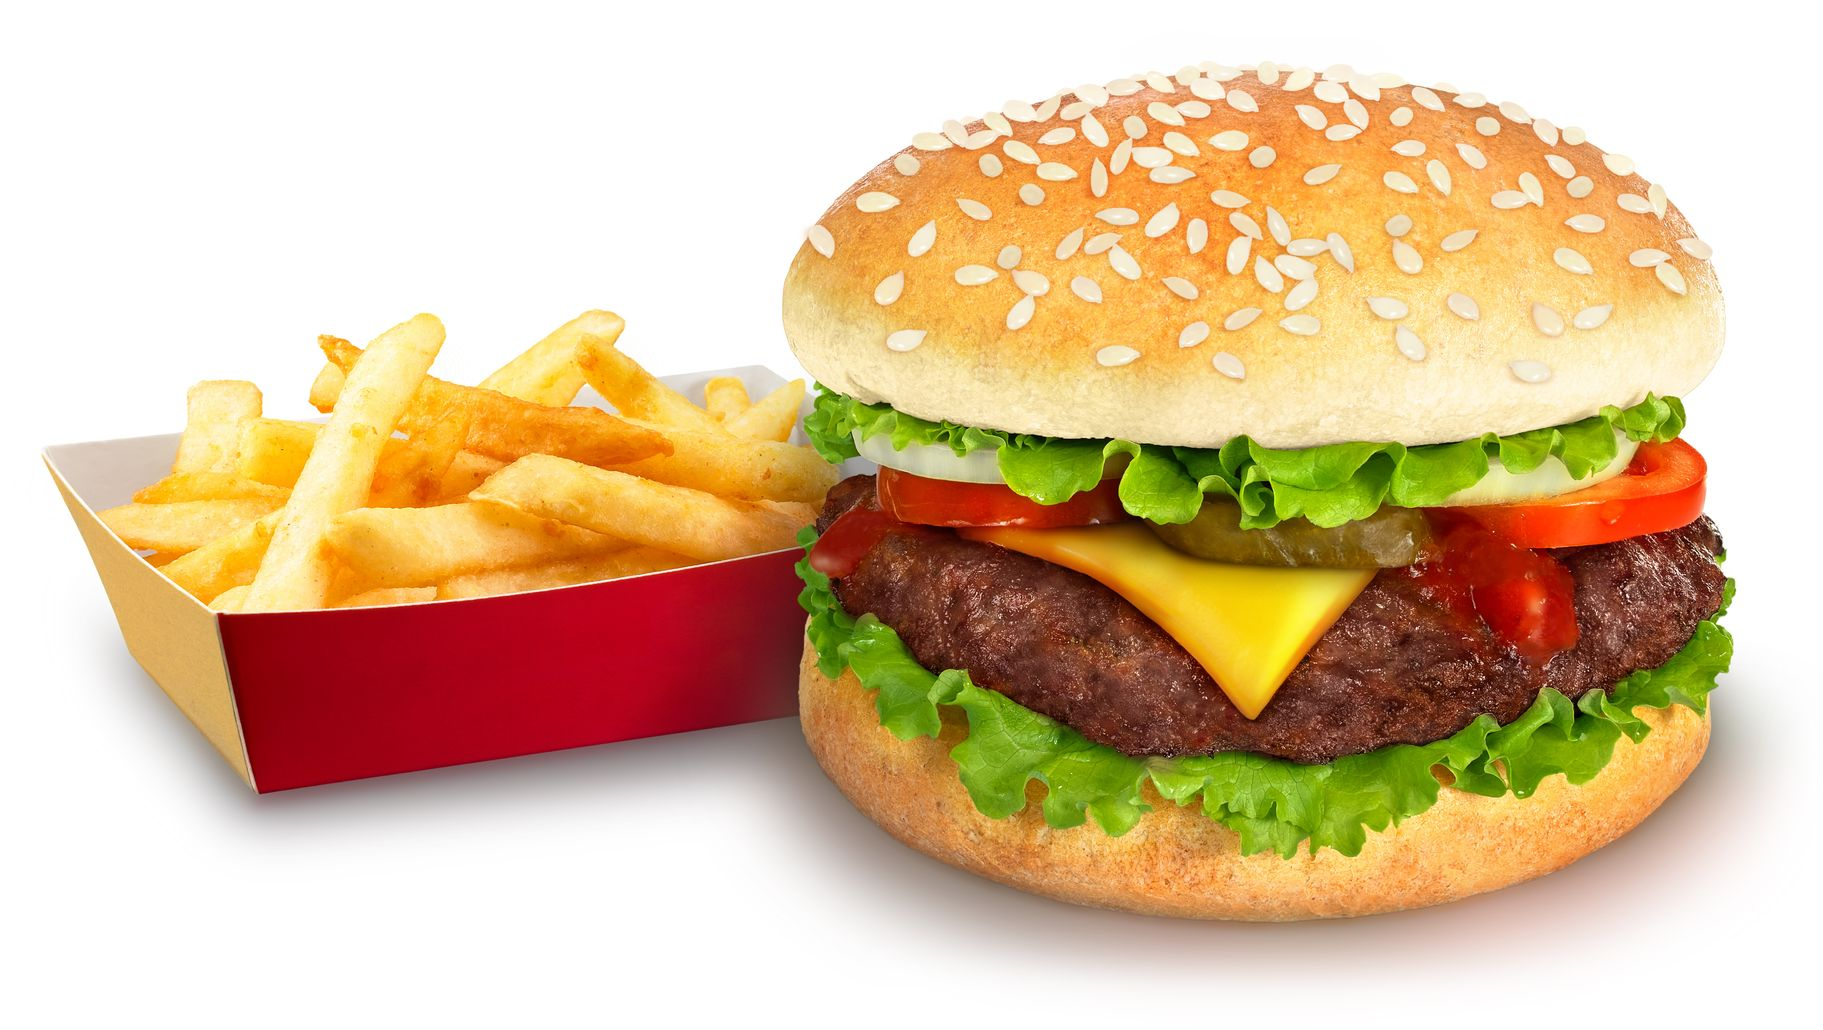 [NEWS]: Why Preservatives Are the Real Hidden Danger in Fast Food